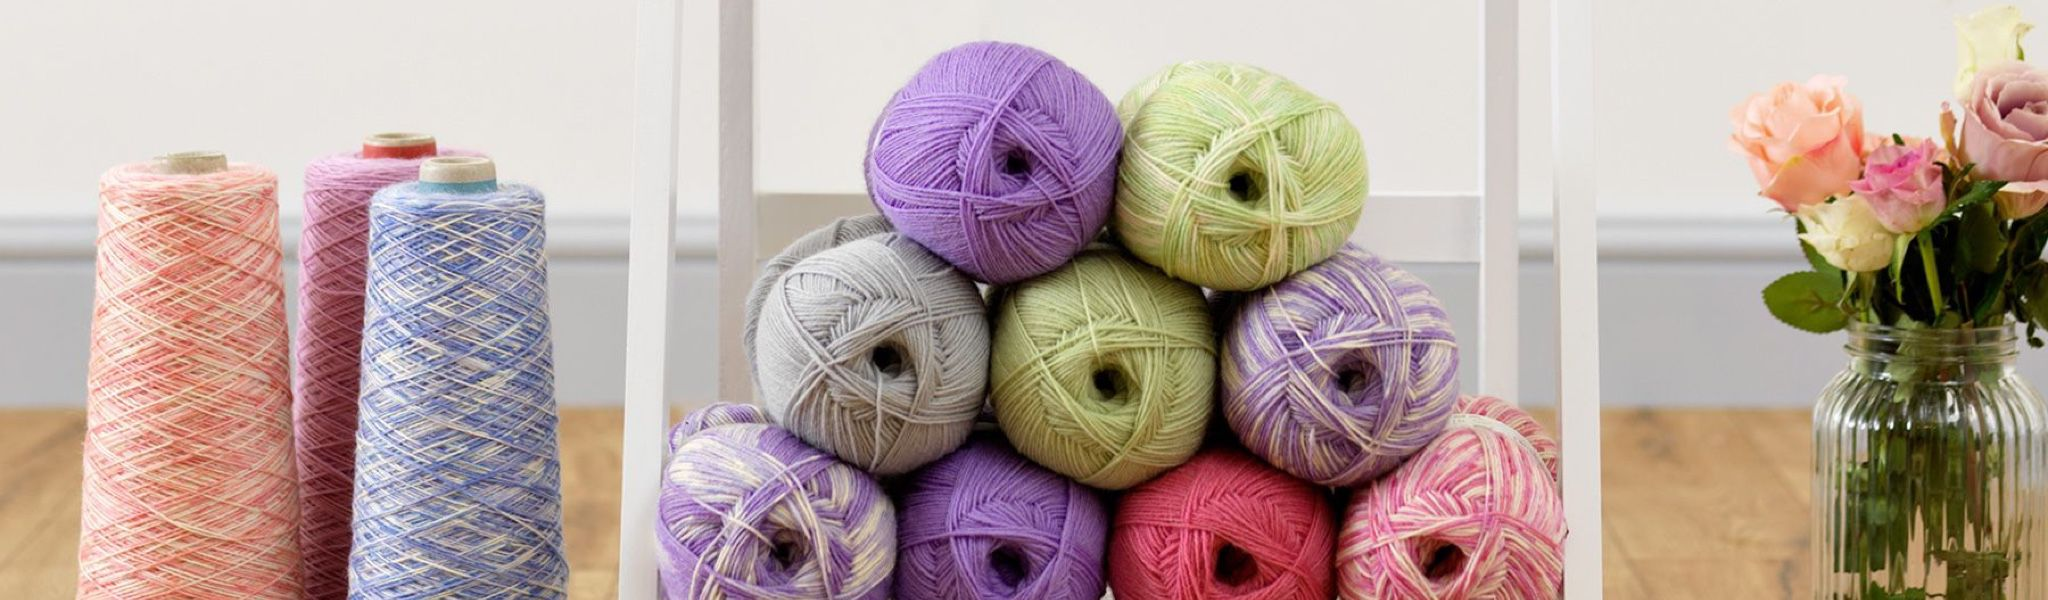 0f66531c8 Knitting Buying Guide